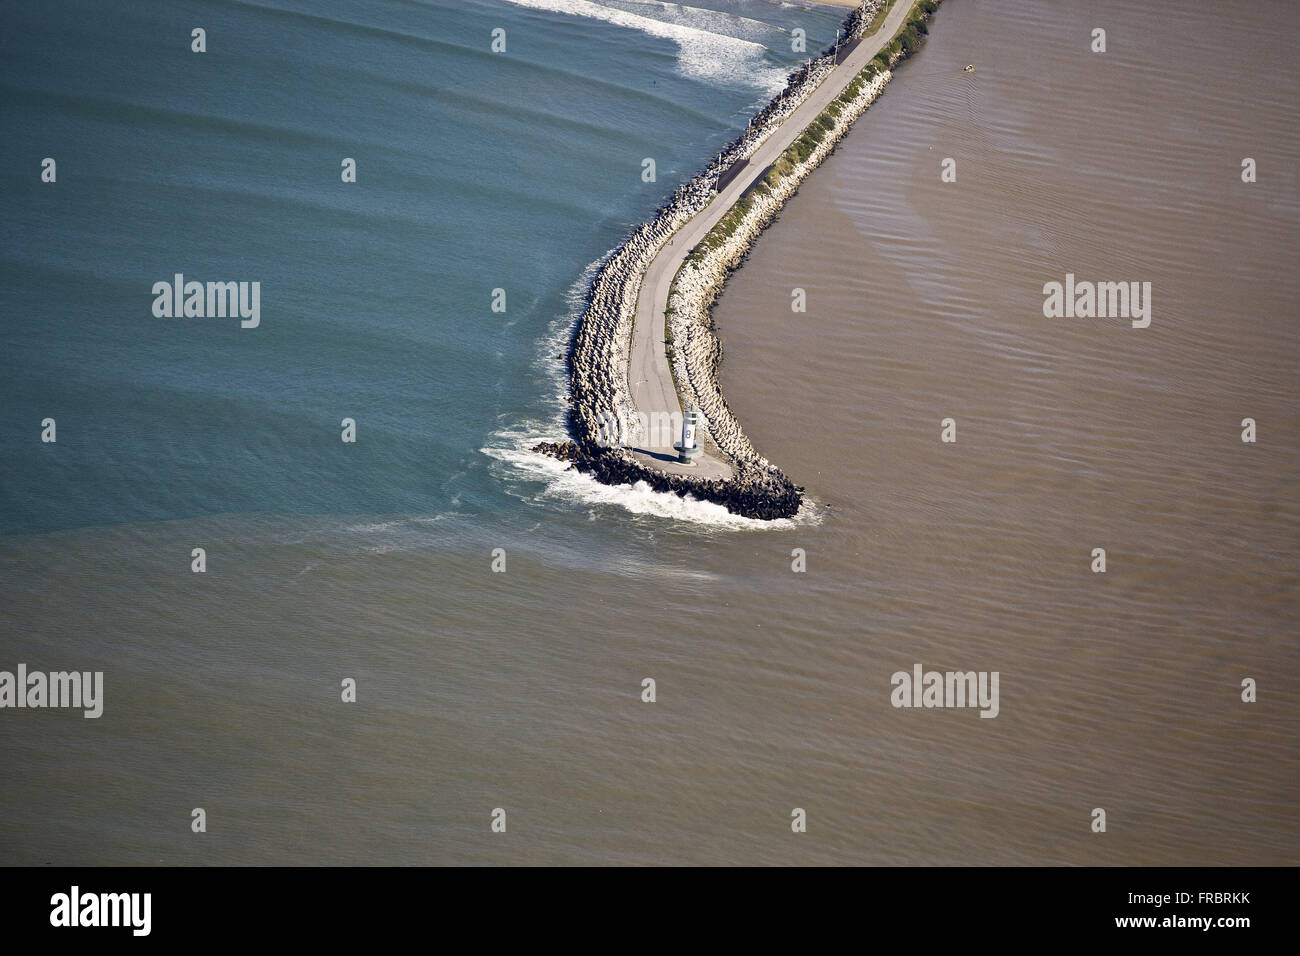 Aerial view of the breakwater at the mouth of the Itajai-Acu River - Stock Image